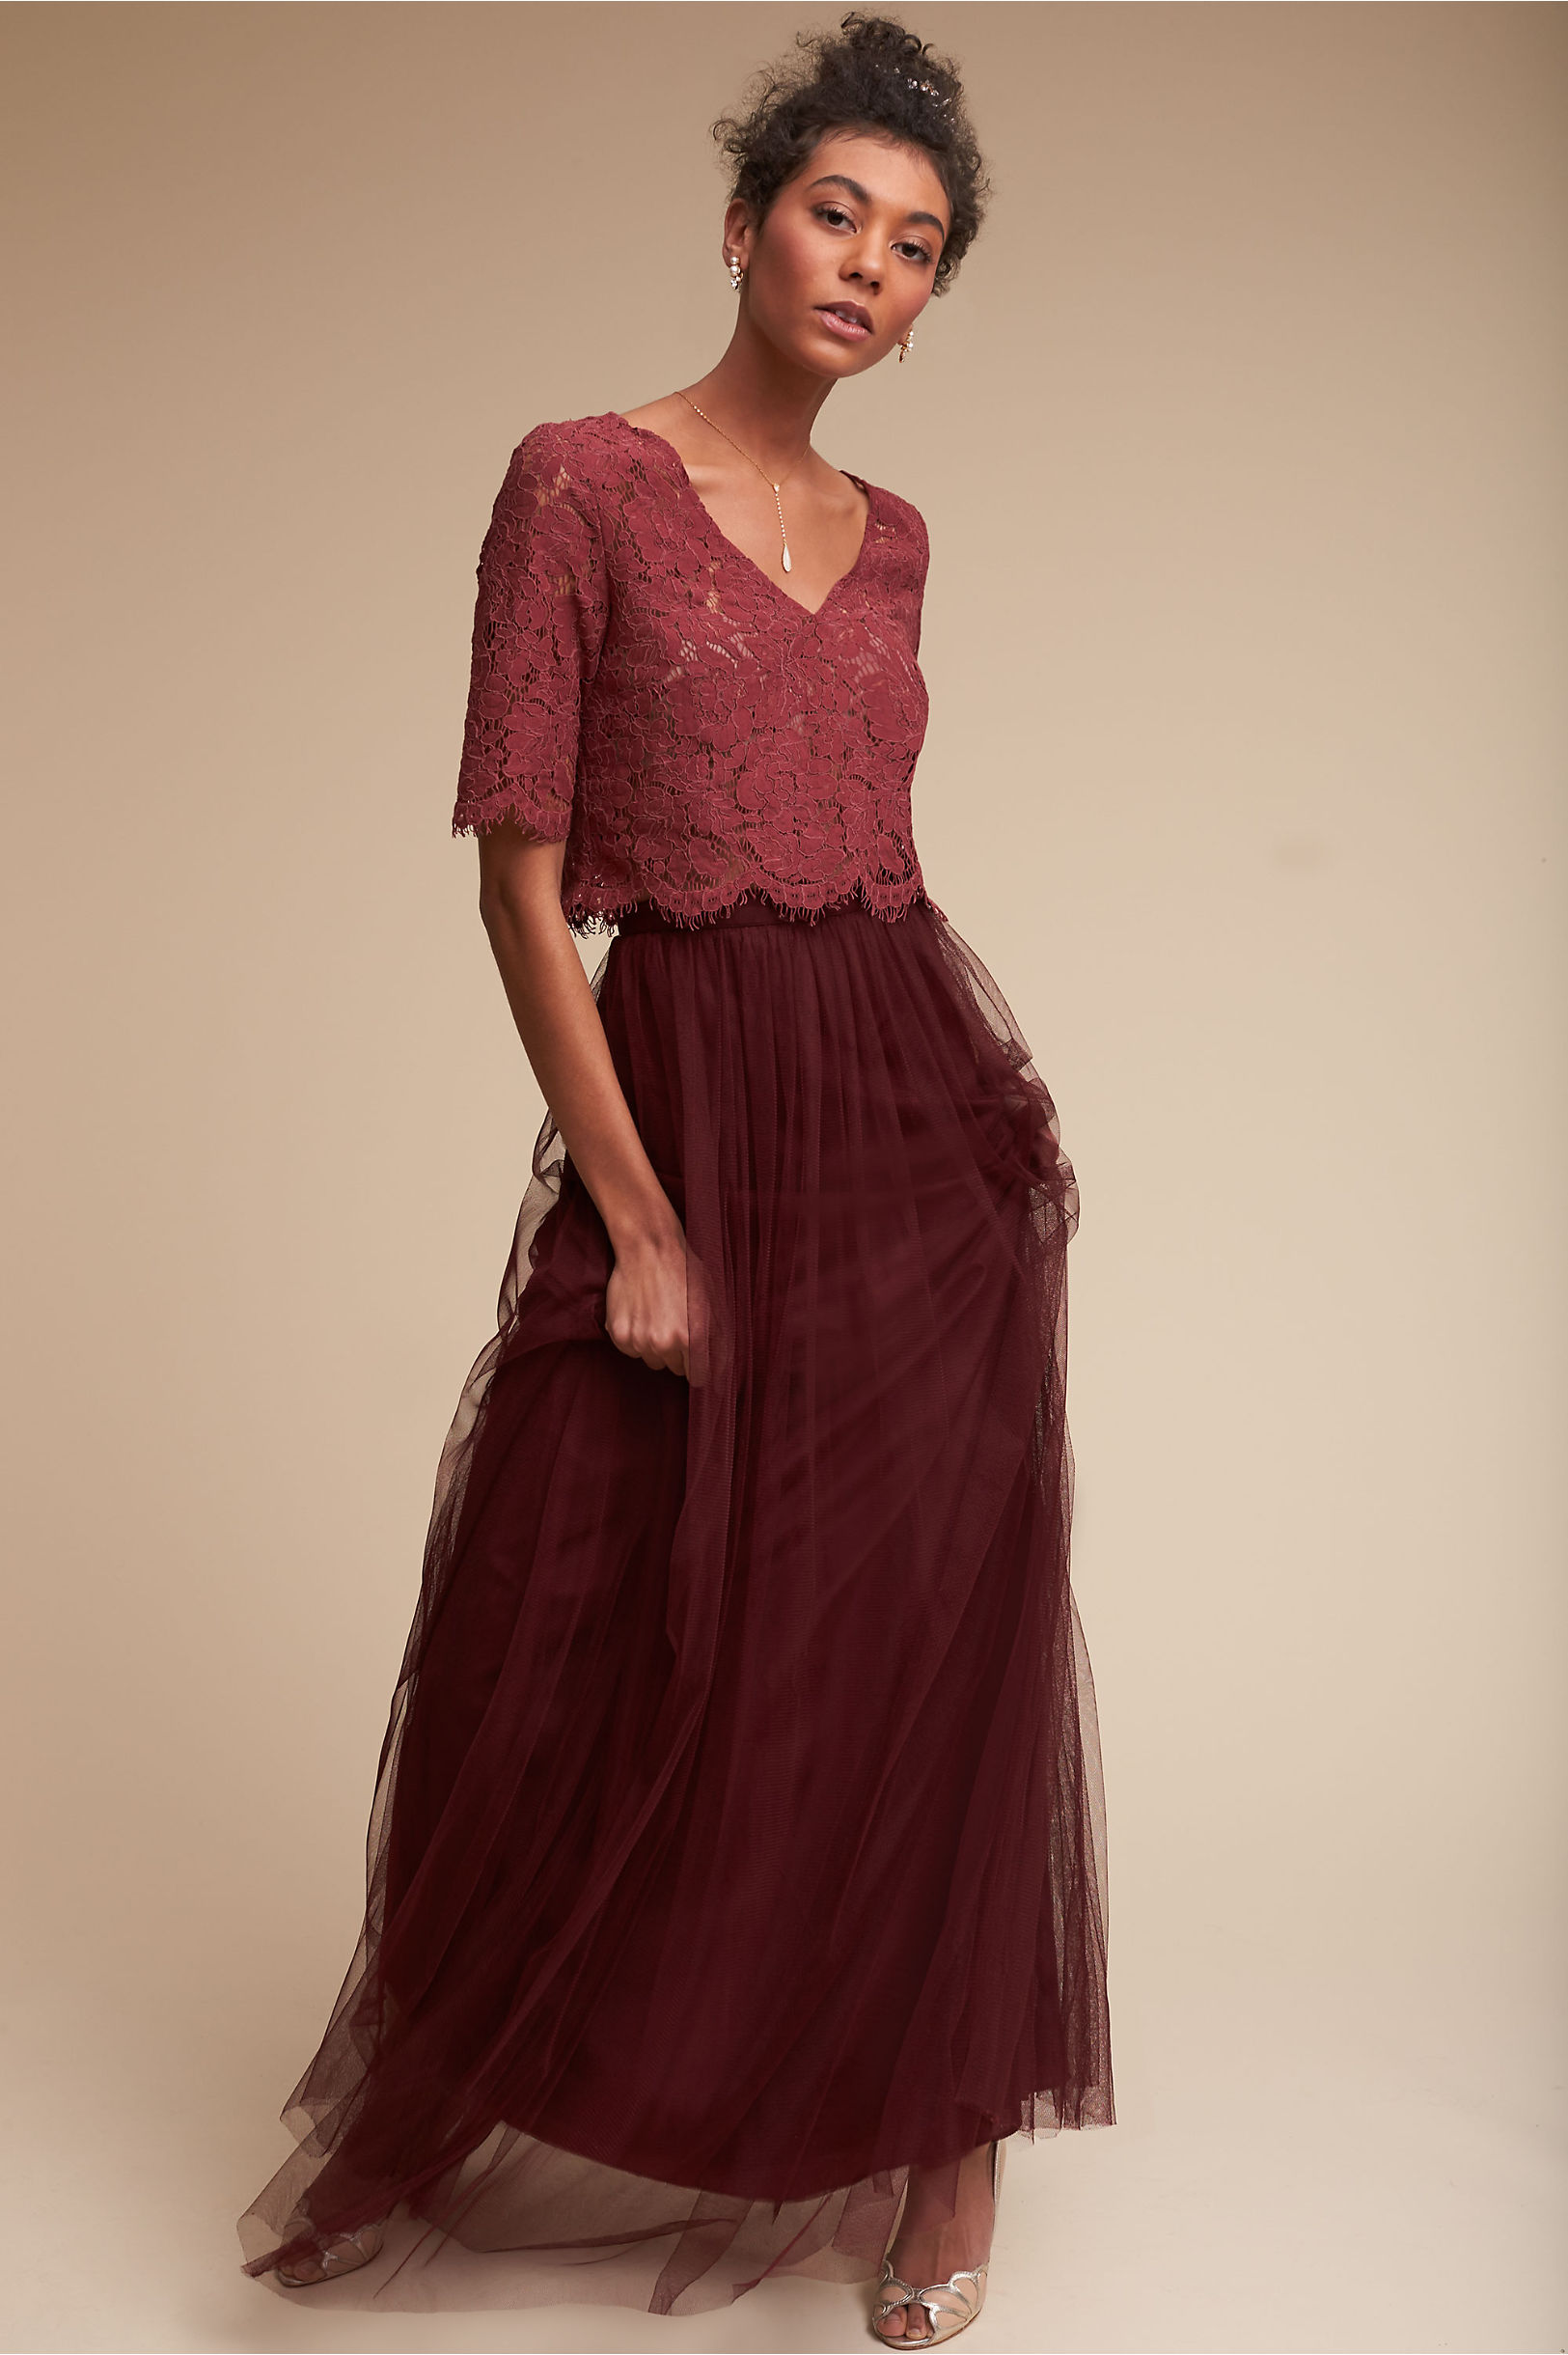 Lace Bridesmaid Dresses | Long & Short Styles | BHLDN